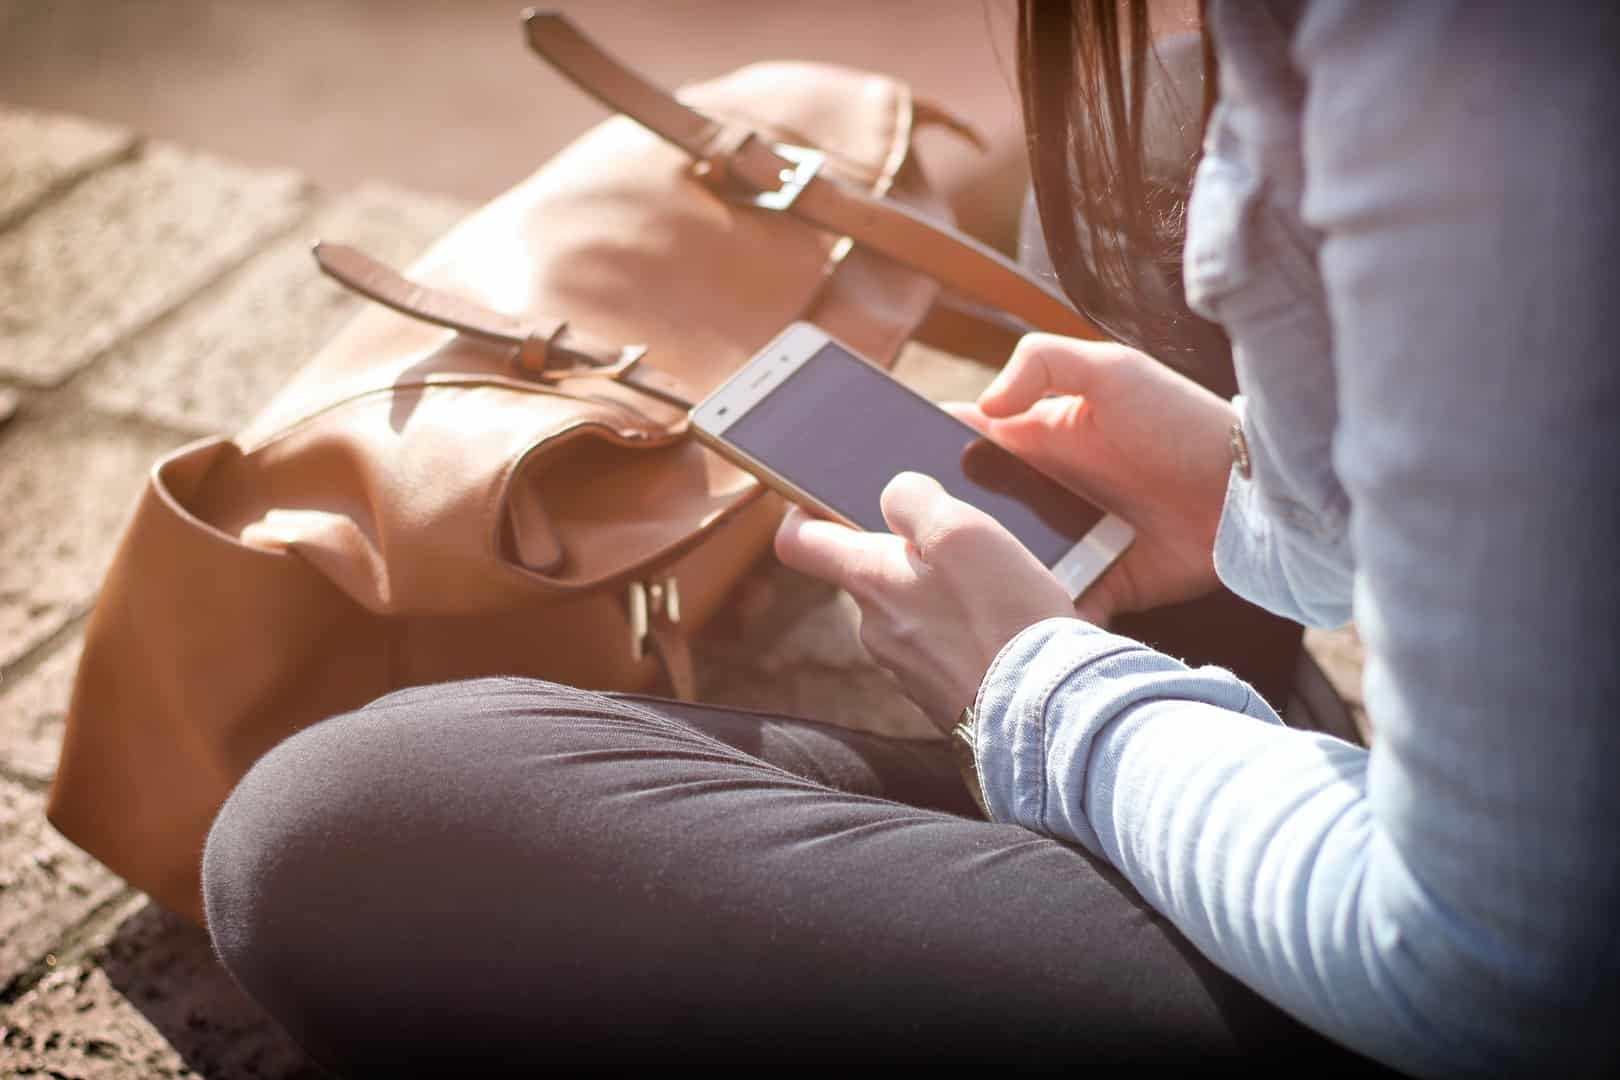 40% Of Students Are Addicted To Their Smartphones